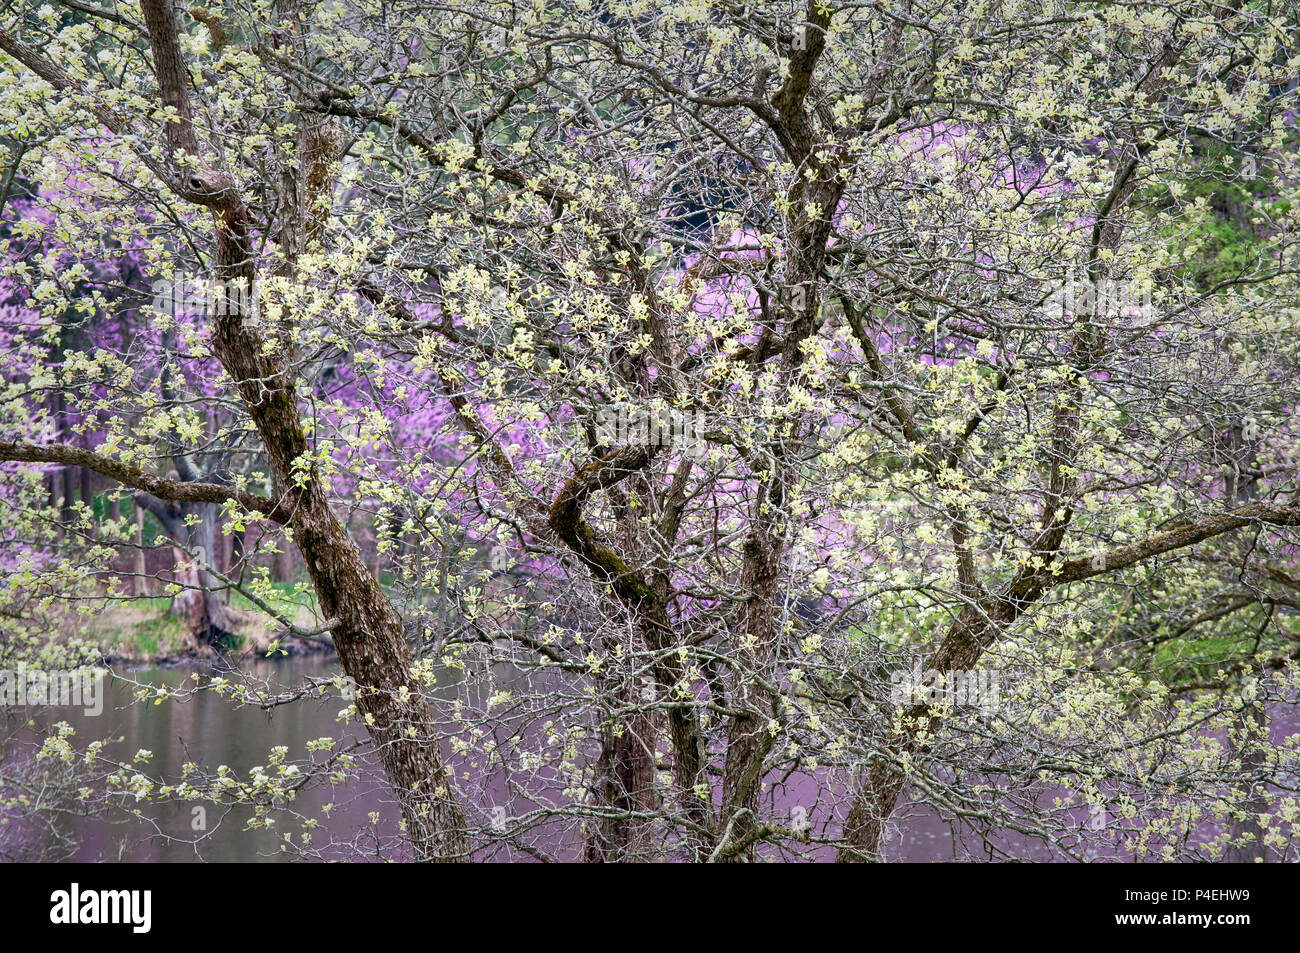 Lake Marmo forms a backdrop for the spring tapestry of color and texture created by a flowering downy hawthorn tree at the Morton Arboretum, Lisle, IL - Stock Image